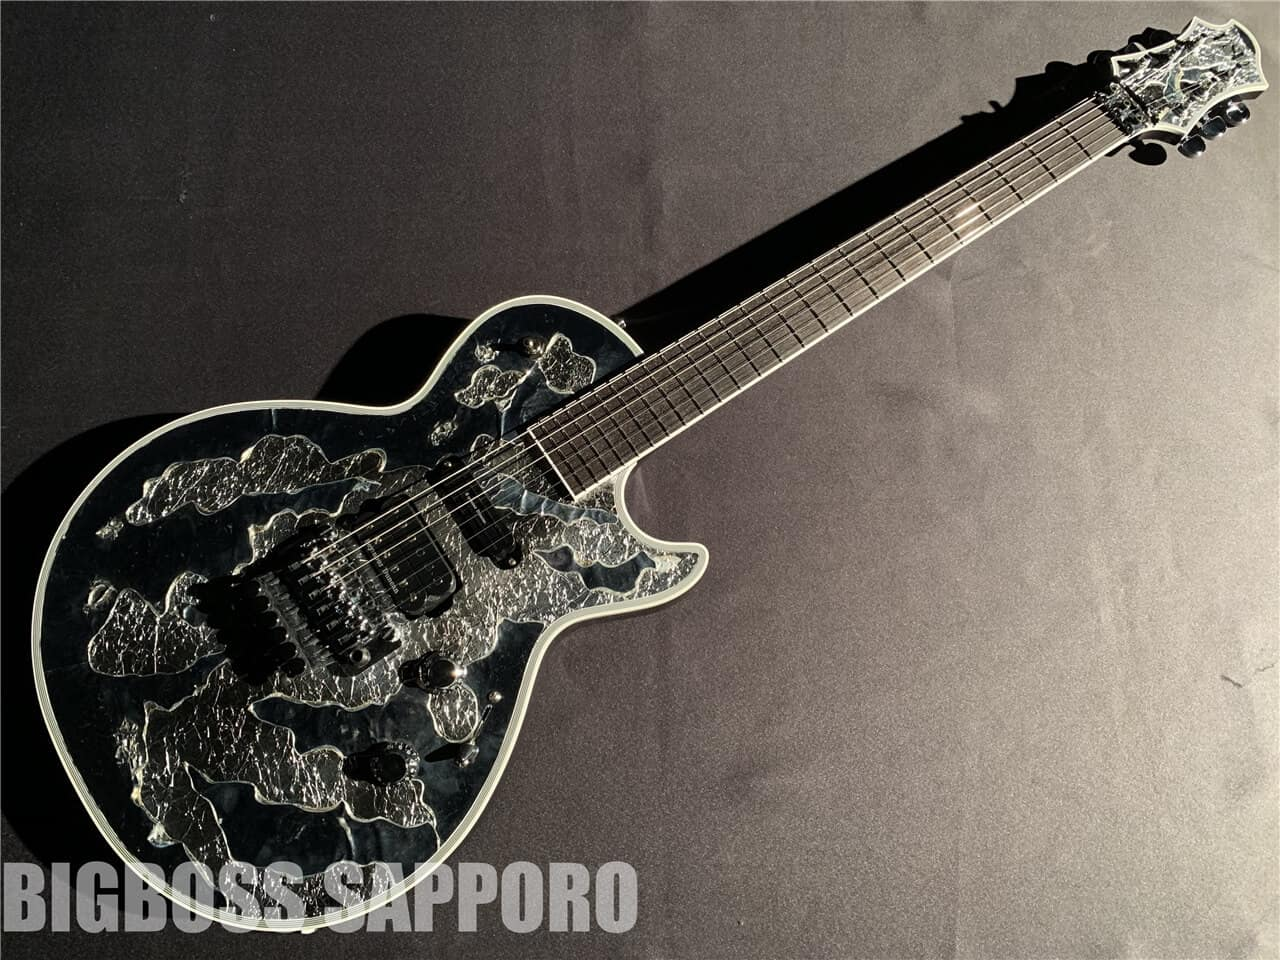 【即納可能】ESP(イーエスピー) ECLIPSE S-II BRILLIANT -MIXEDMEDIA- (LUNA SEA/SUGIZO Model ) 札幌店